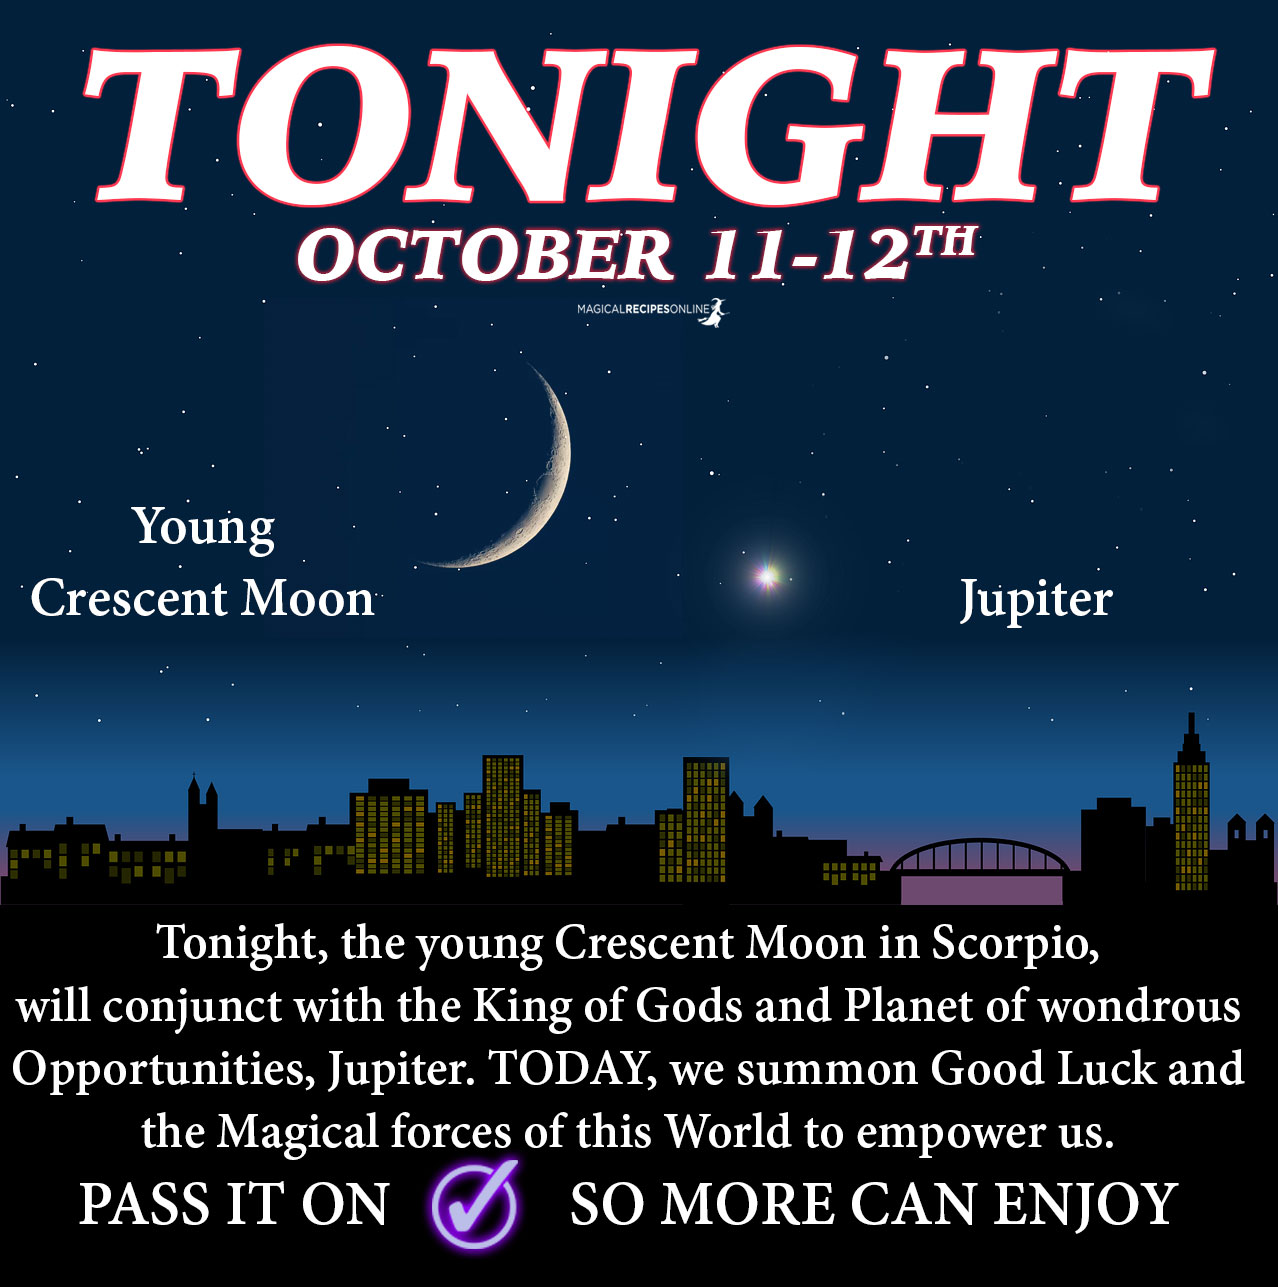 the young Crescent Moon will conjunct with Jupiter giving us the opportunity to summon all the forces of Good Luck and Magic to empower us. This influence will affect both today and tomorrow.